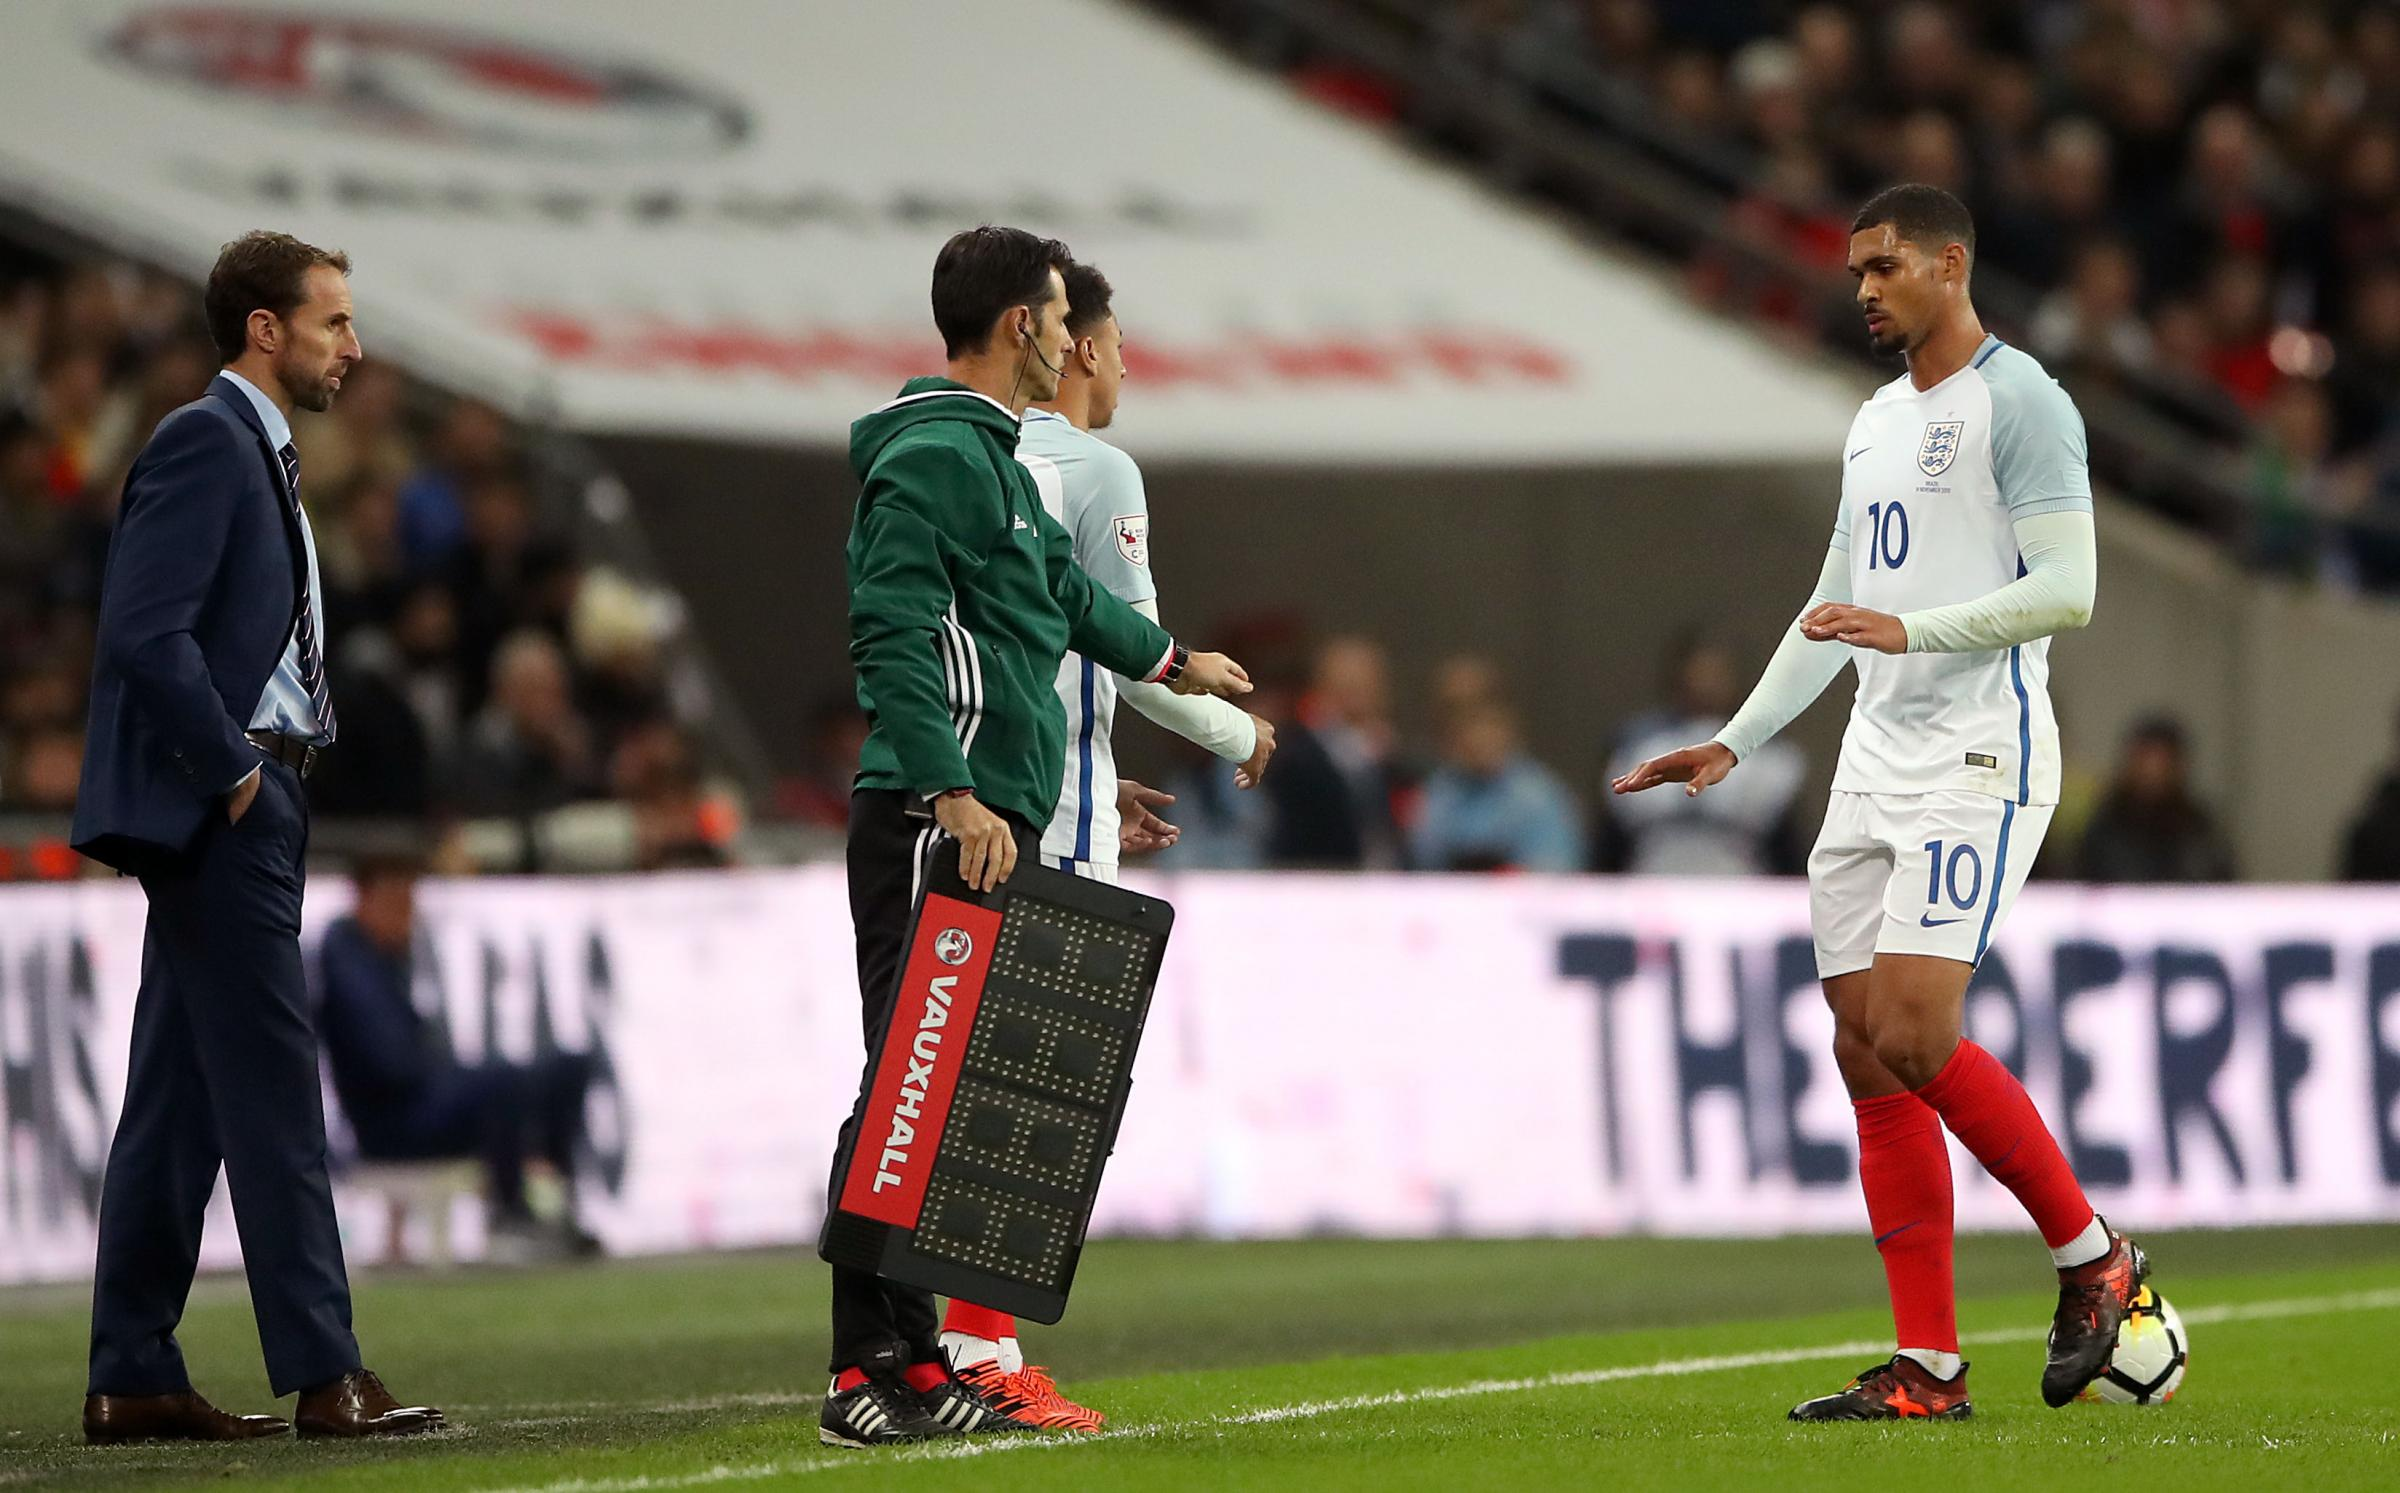 Ruben Loftus-Cheek leaves the pitch with an injury | Picture: PA